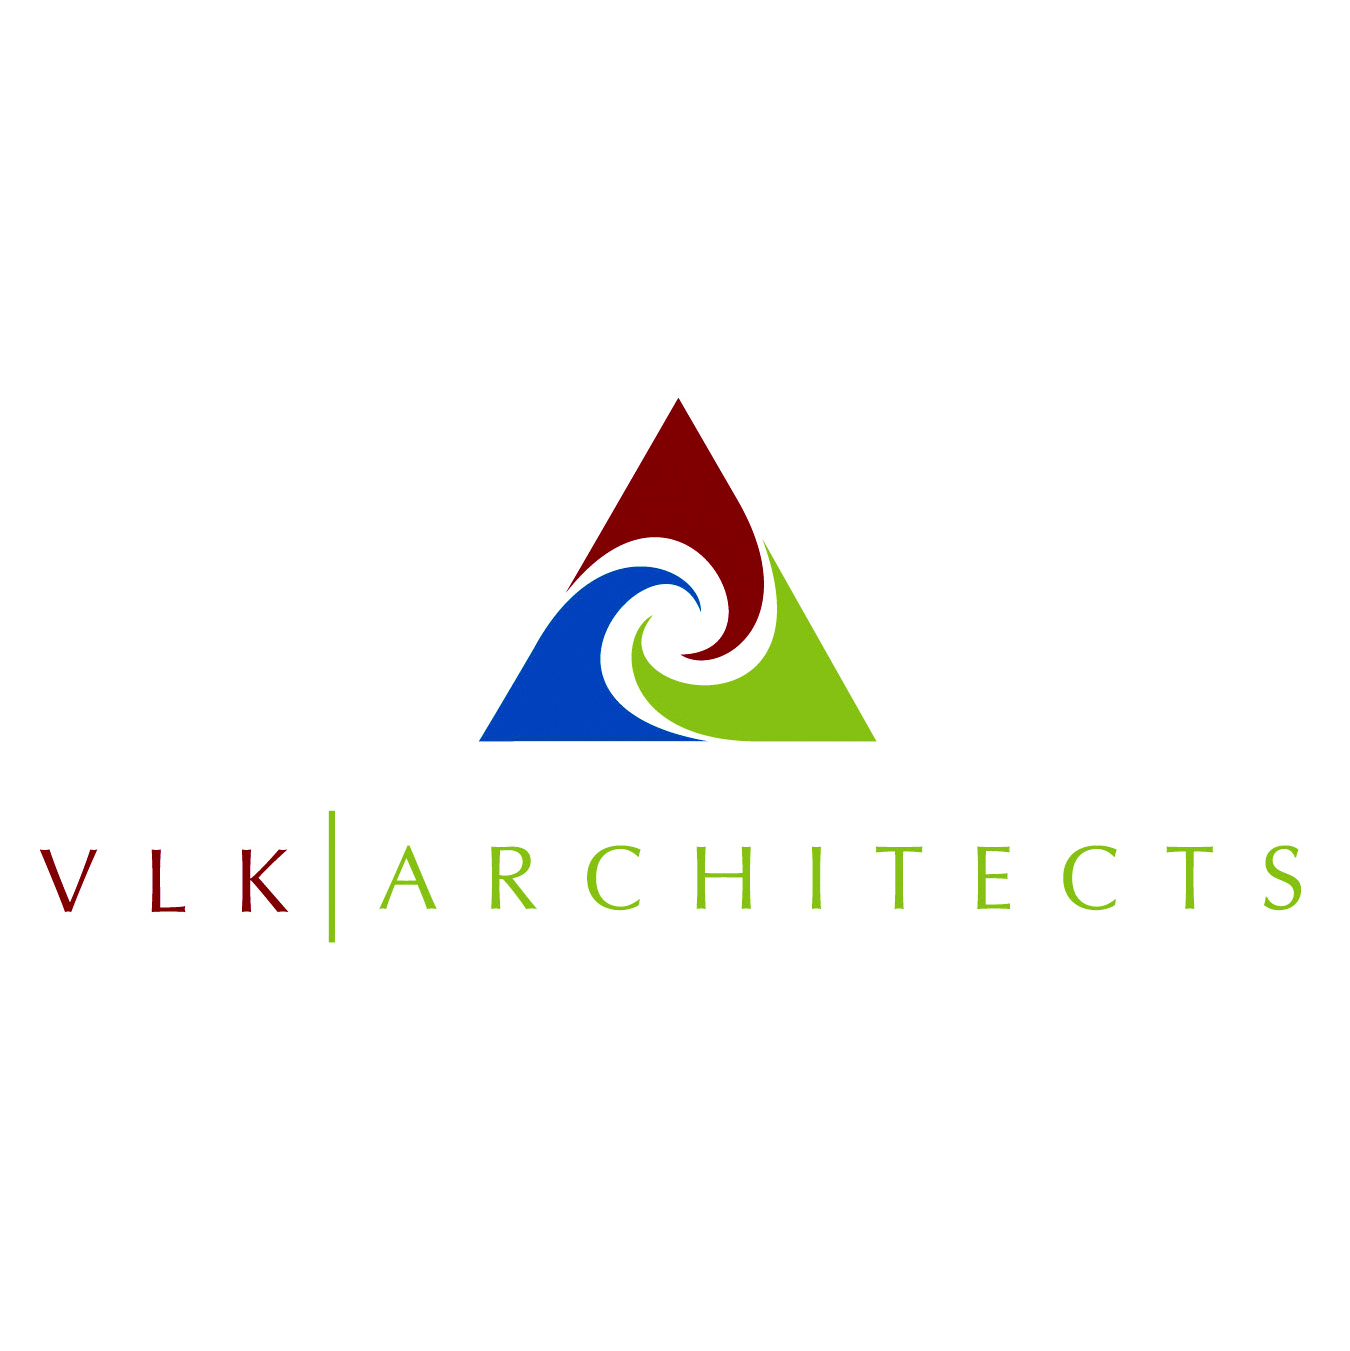 vlkarchitects copy